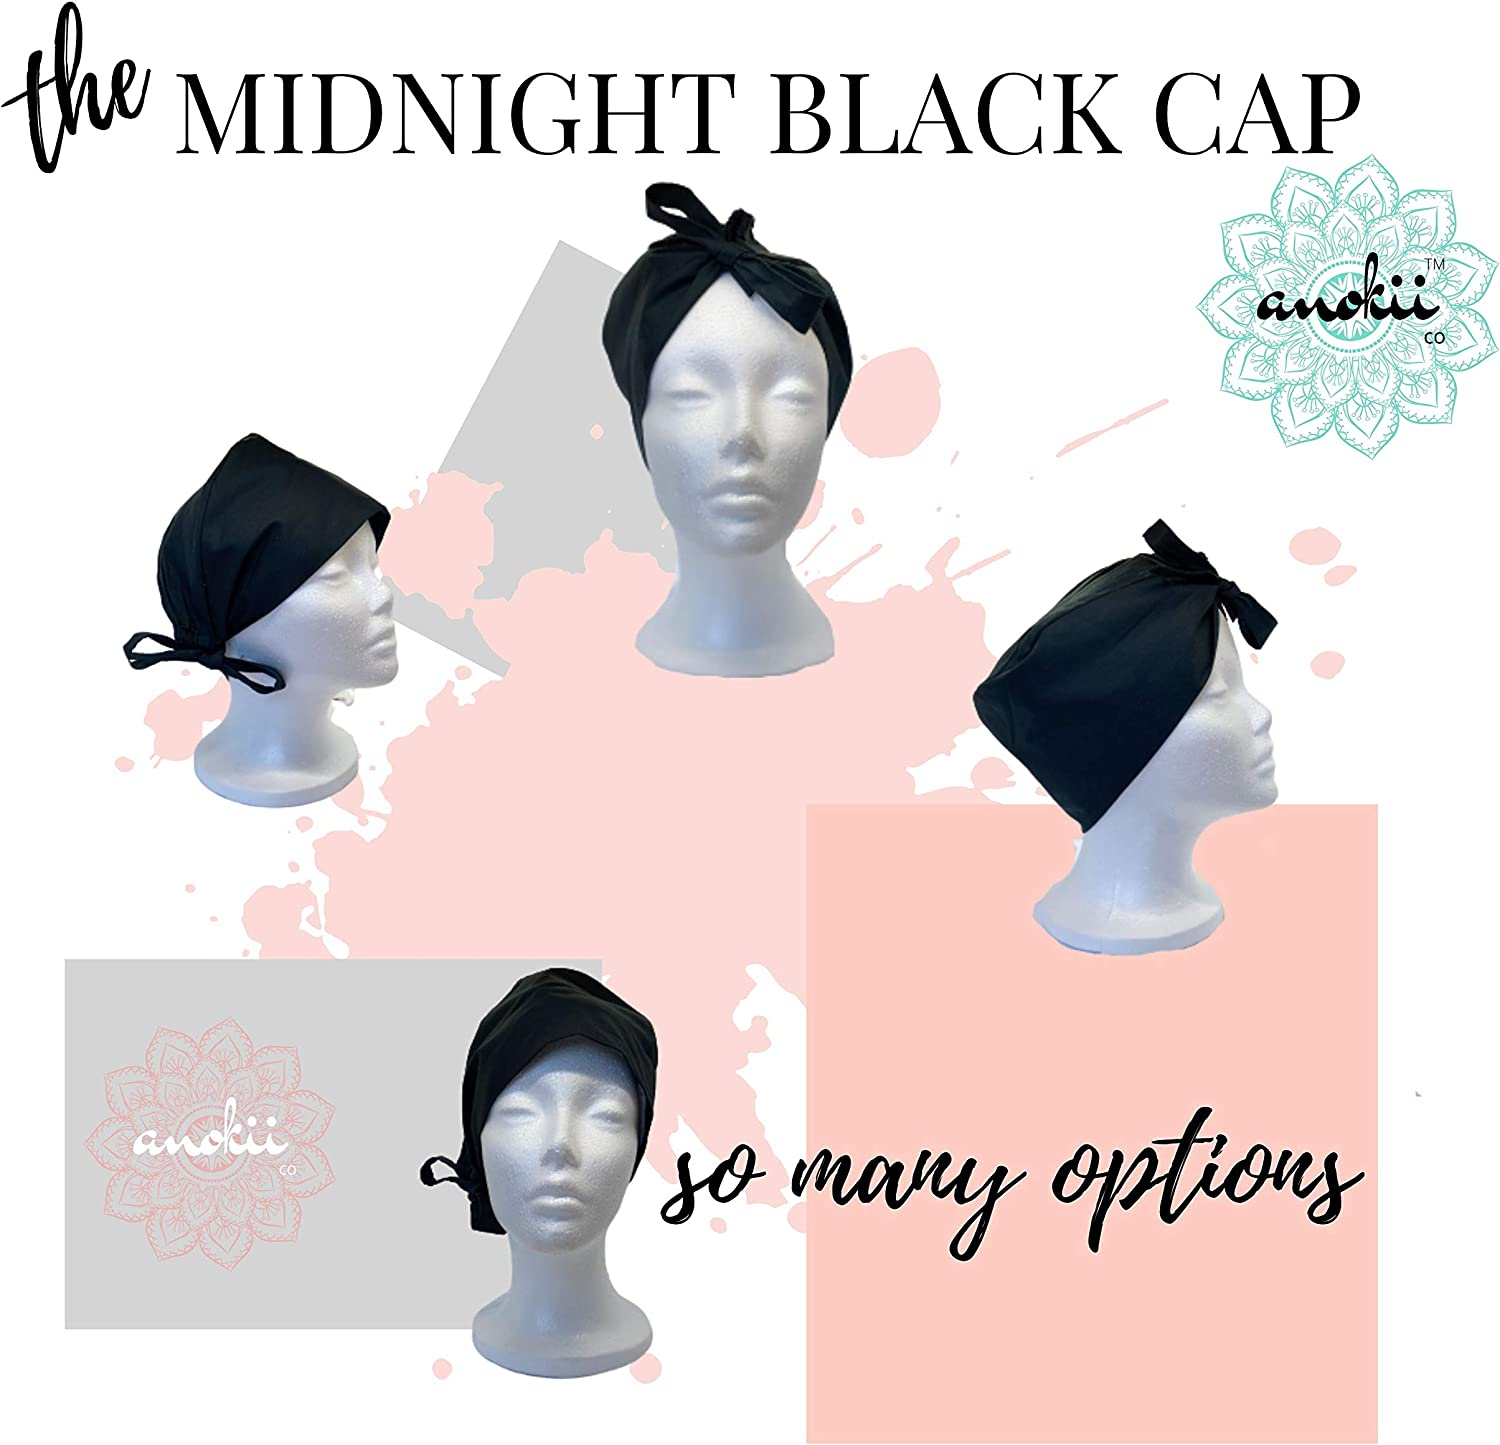 Head Covers by ANOKII CO One Size Adjustable Hat with Sweatband for Men and Women Black Working Skull Cap